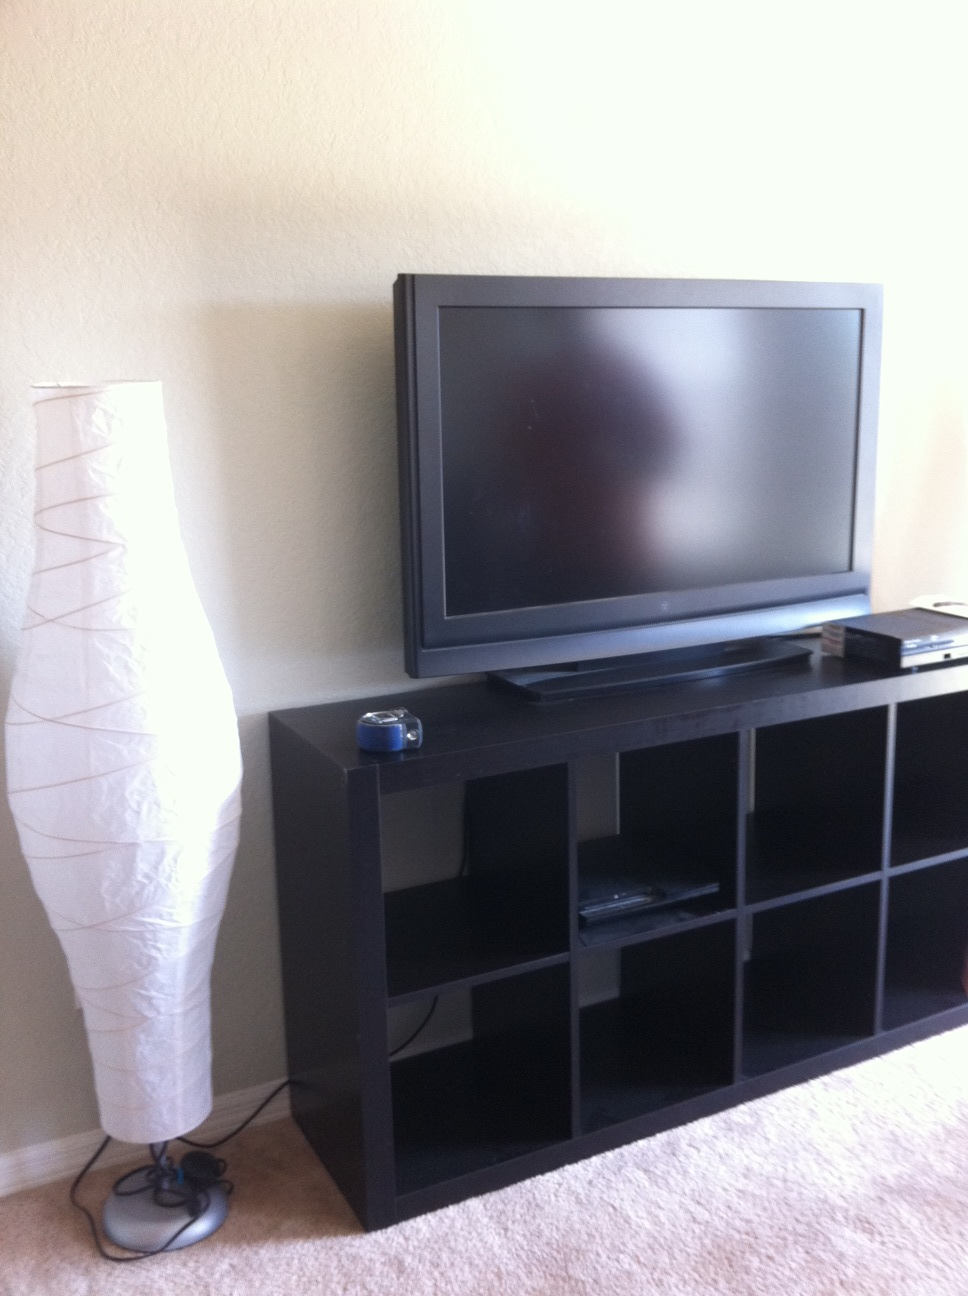 Most Recently Released Ikea Tv Console Tables In Contemporary Family Room Style With Flat Screen Floating Ikea Tv (Gallery 15 of 20)